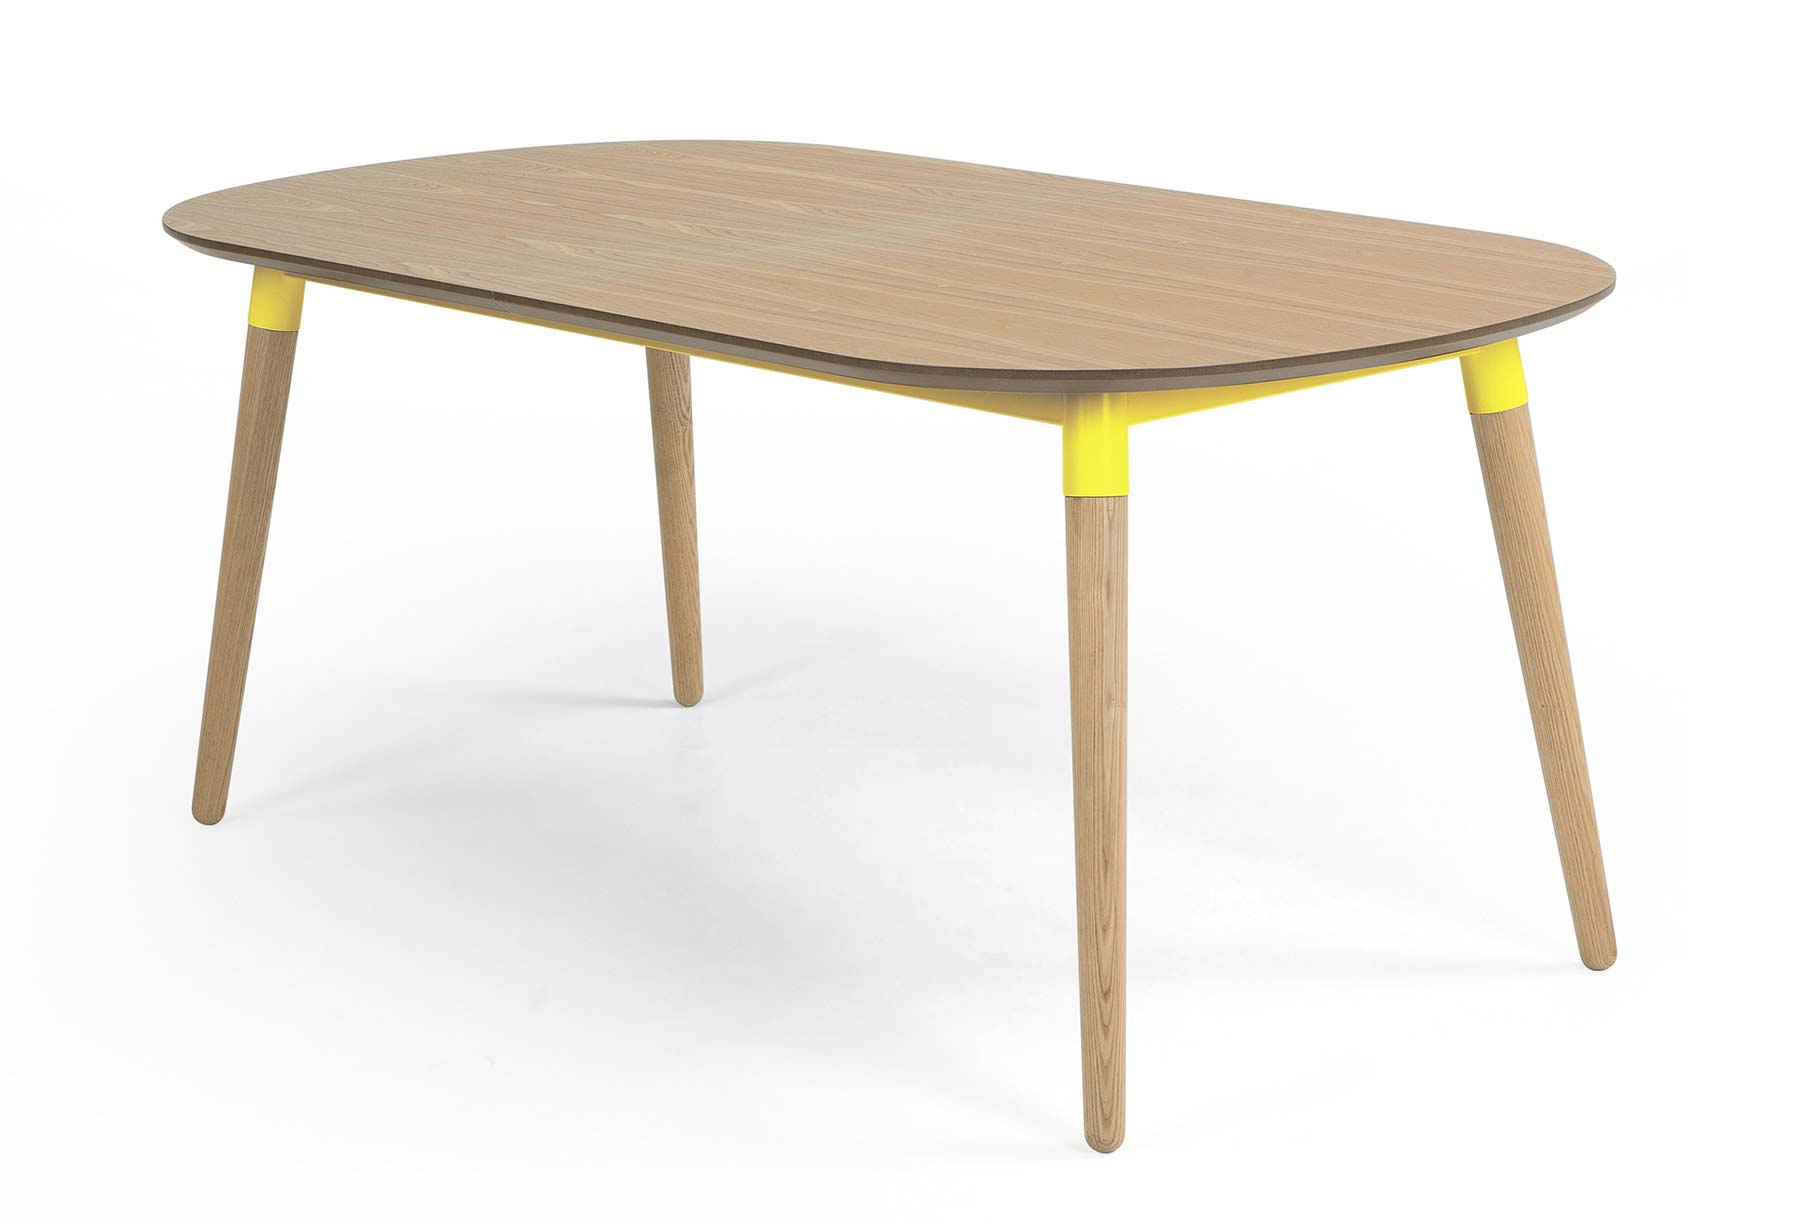 Table rallonges moderne en bois - Table moderne bois ...